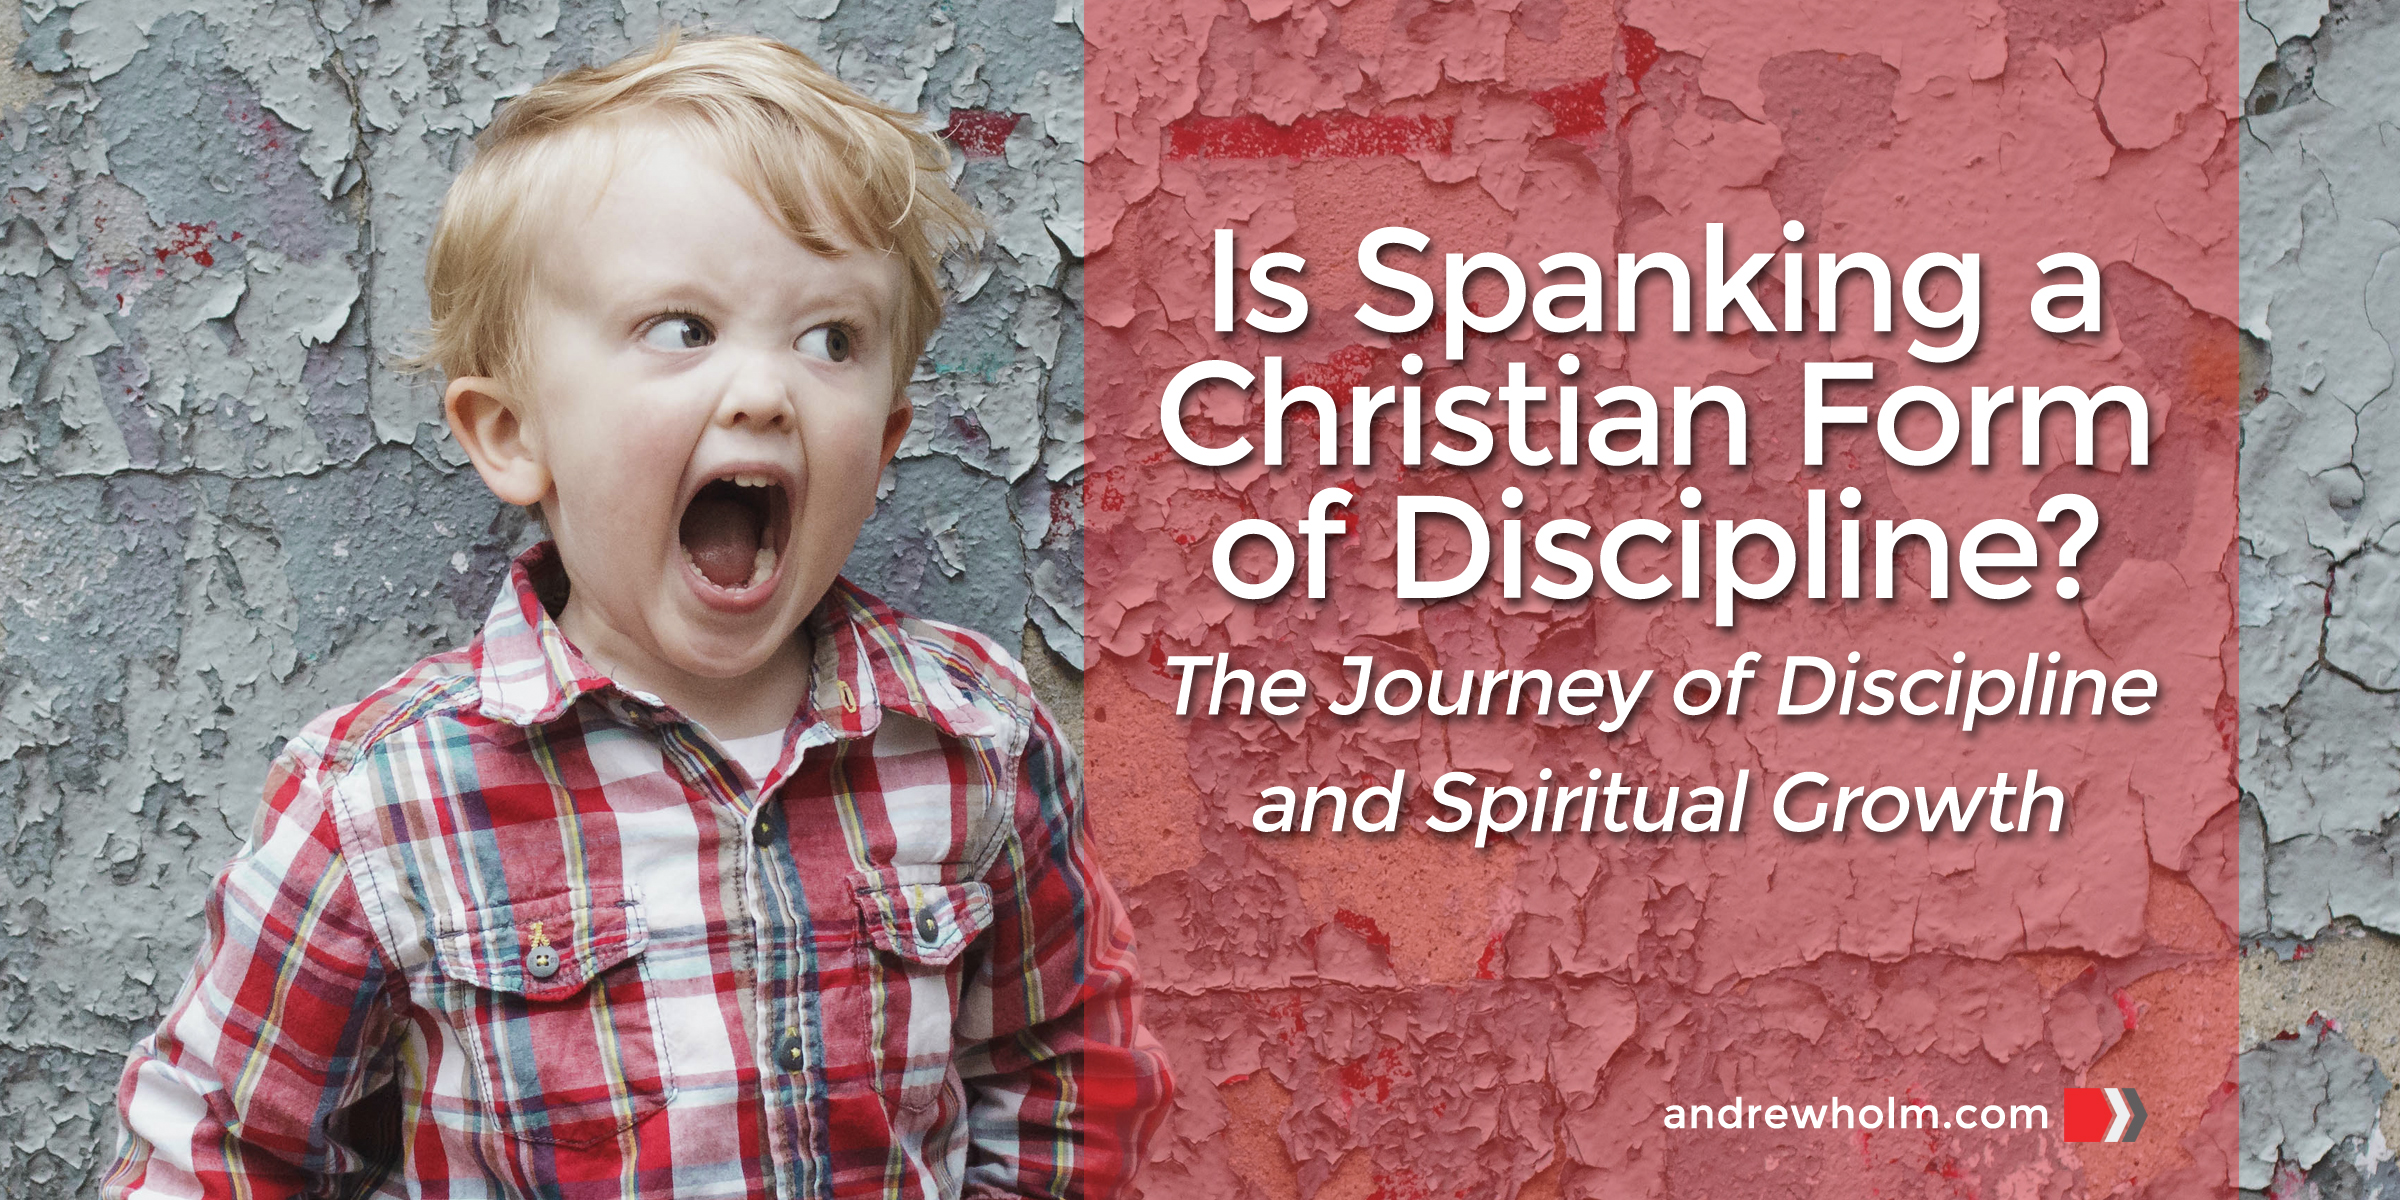 Is Spanking a Christian Form of Discipline?